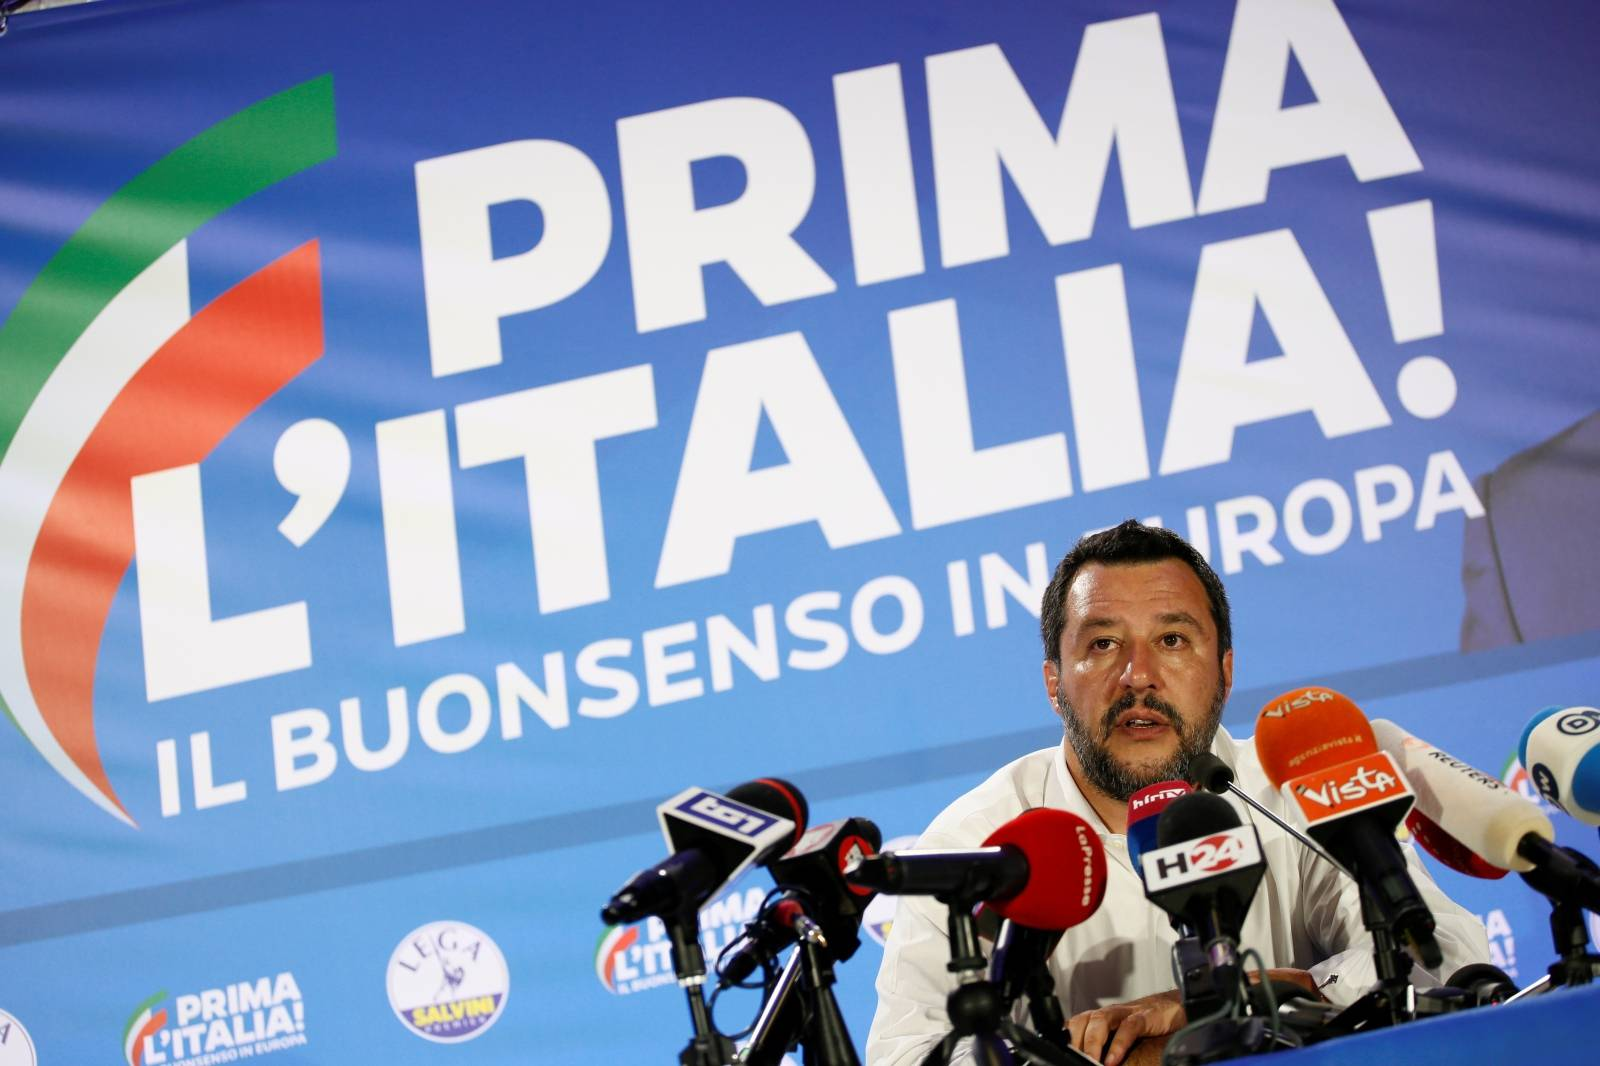 Italian Deputy Prime Minister and leader of far-right League party Matteo Salvini speaks during his European Parliament election night event in Milan